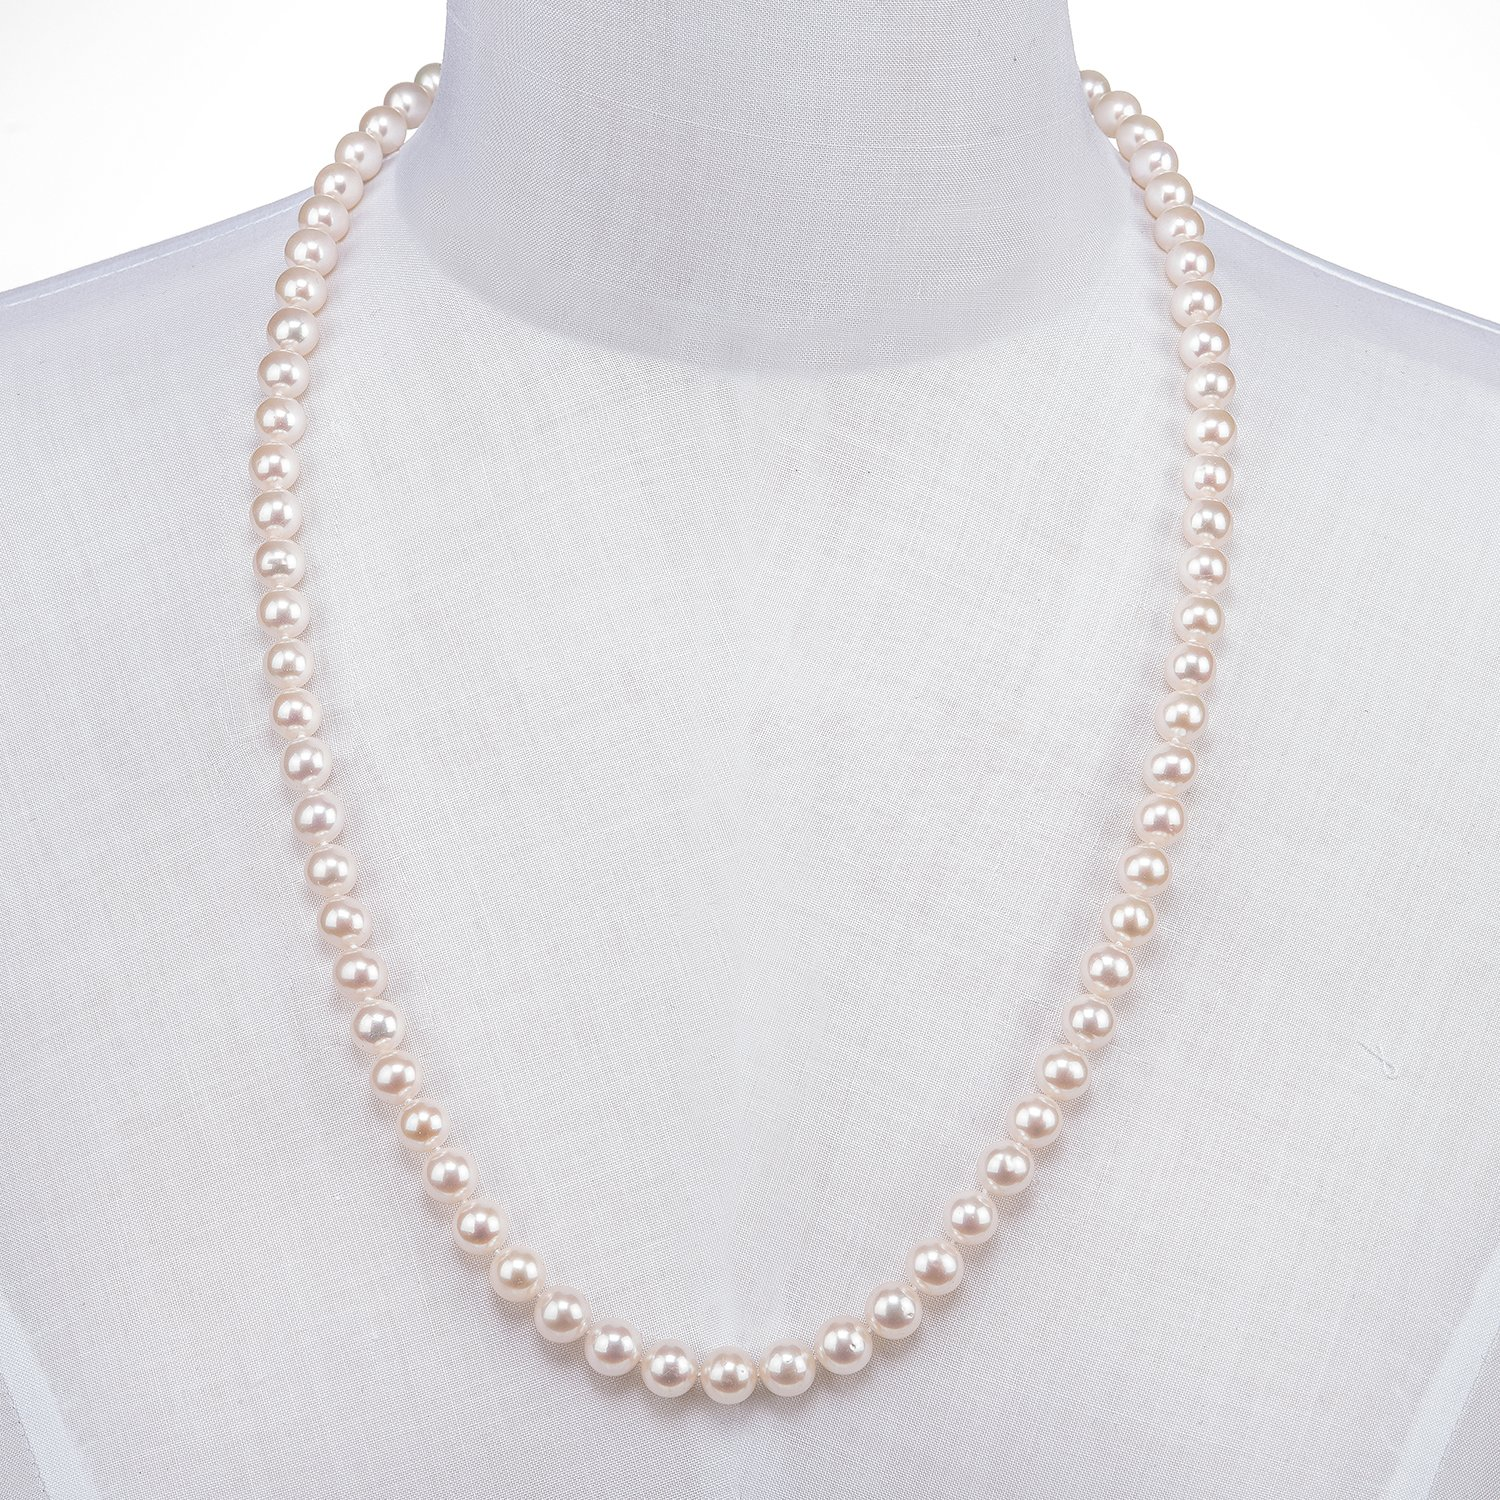 PAVOI Handpicked Freshwater Cultured Pearl Necklace Strand – High Luster White